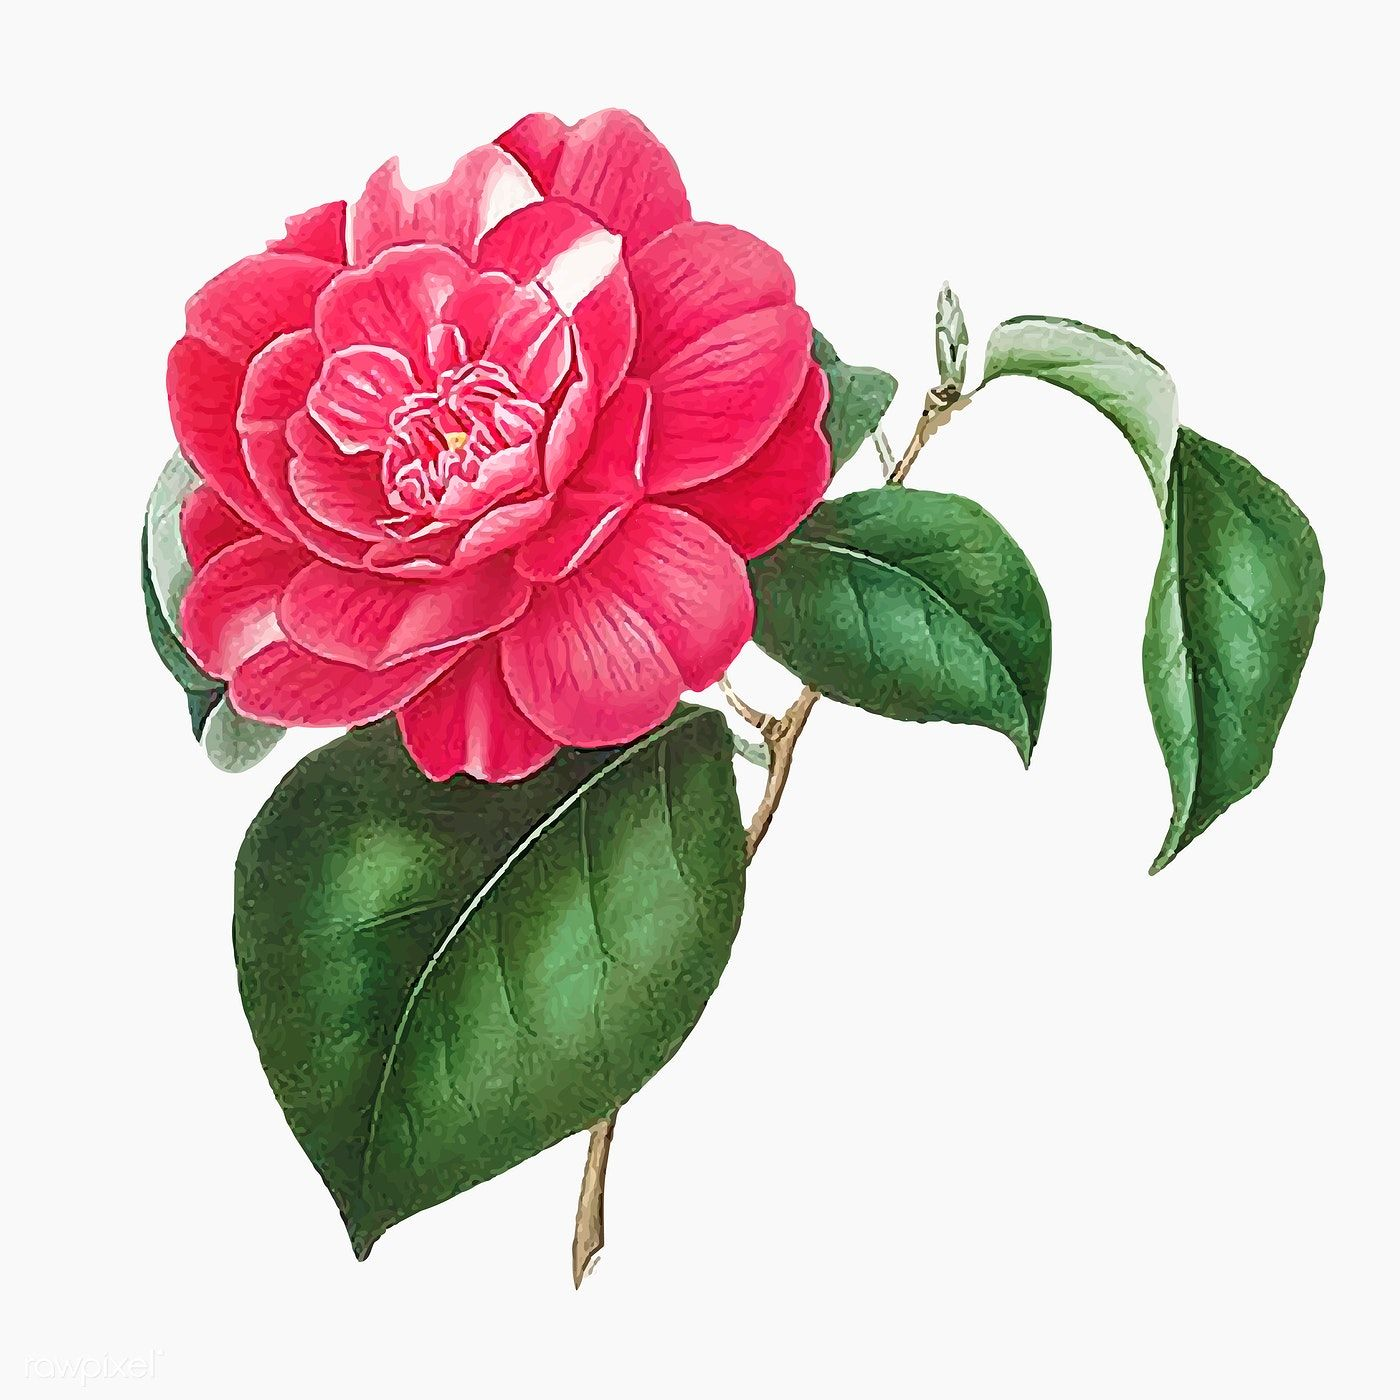 Pink Camellia Rose Flower Vector Premium Image By Rawpixel Com ในป 2020